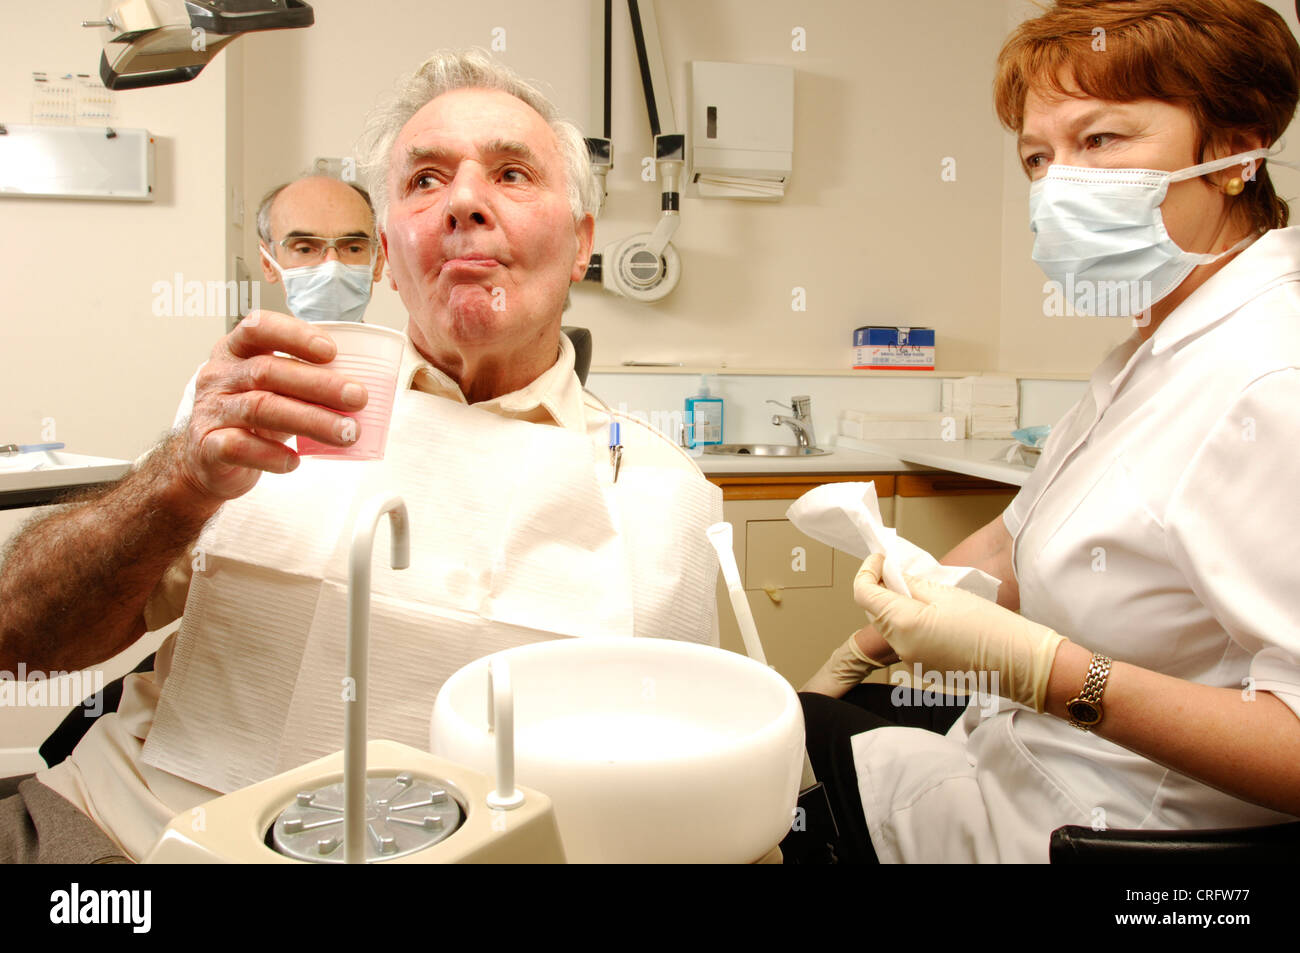 An elderly man rinses with anti-microbial mouth wash after dental treatment, watched by the dentist's assistant - Stock Image